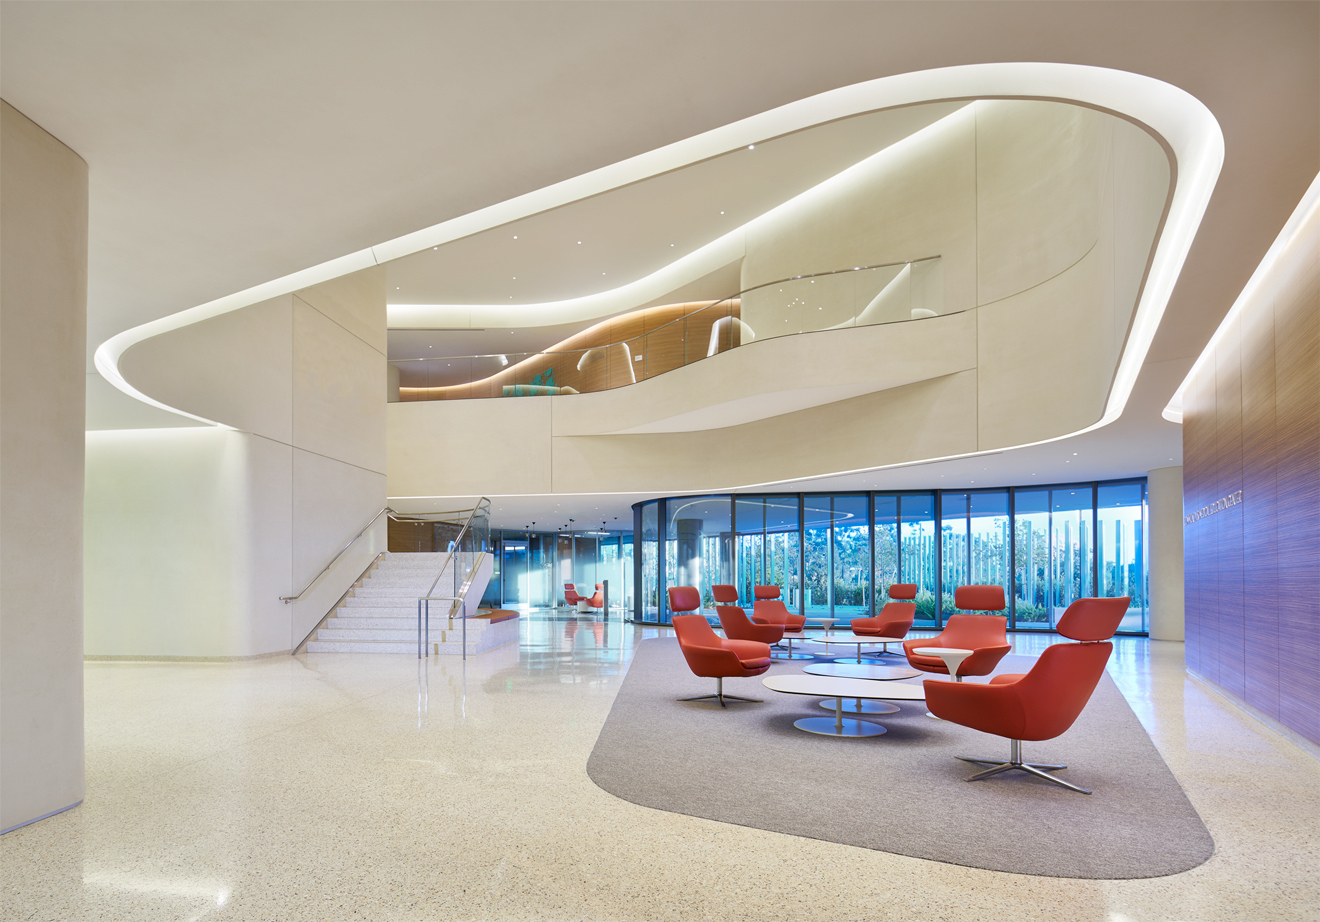 UC San Diego, Jacobs Medical Center by Yazdani Studio of CannonDesign